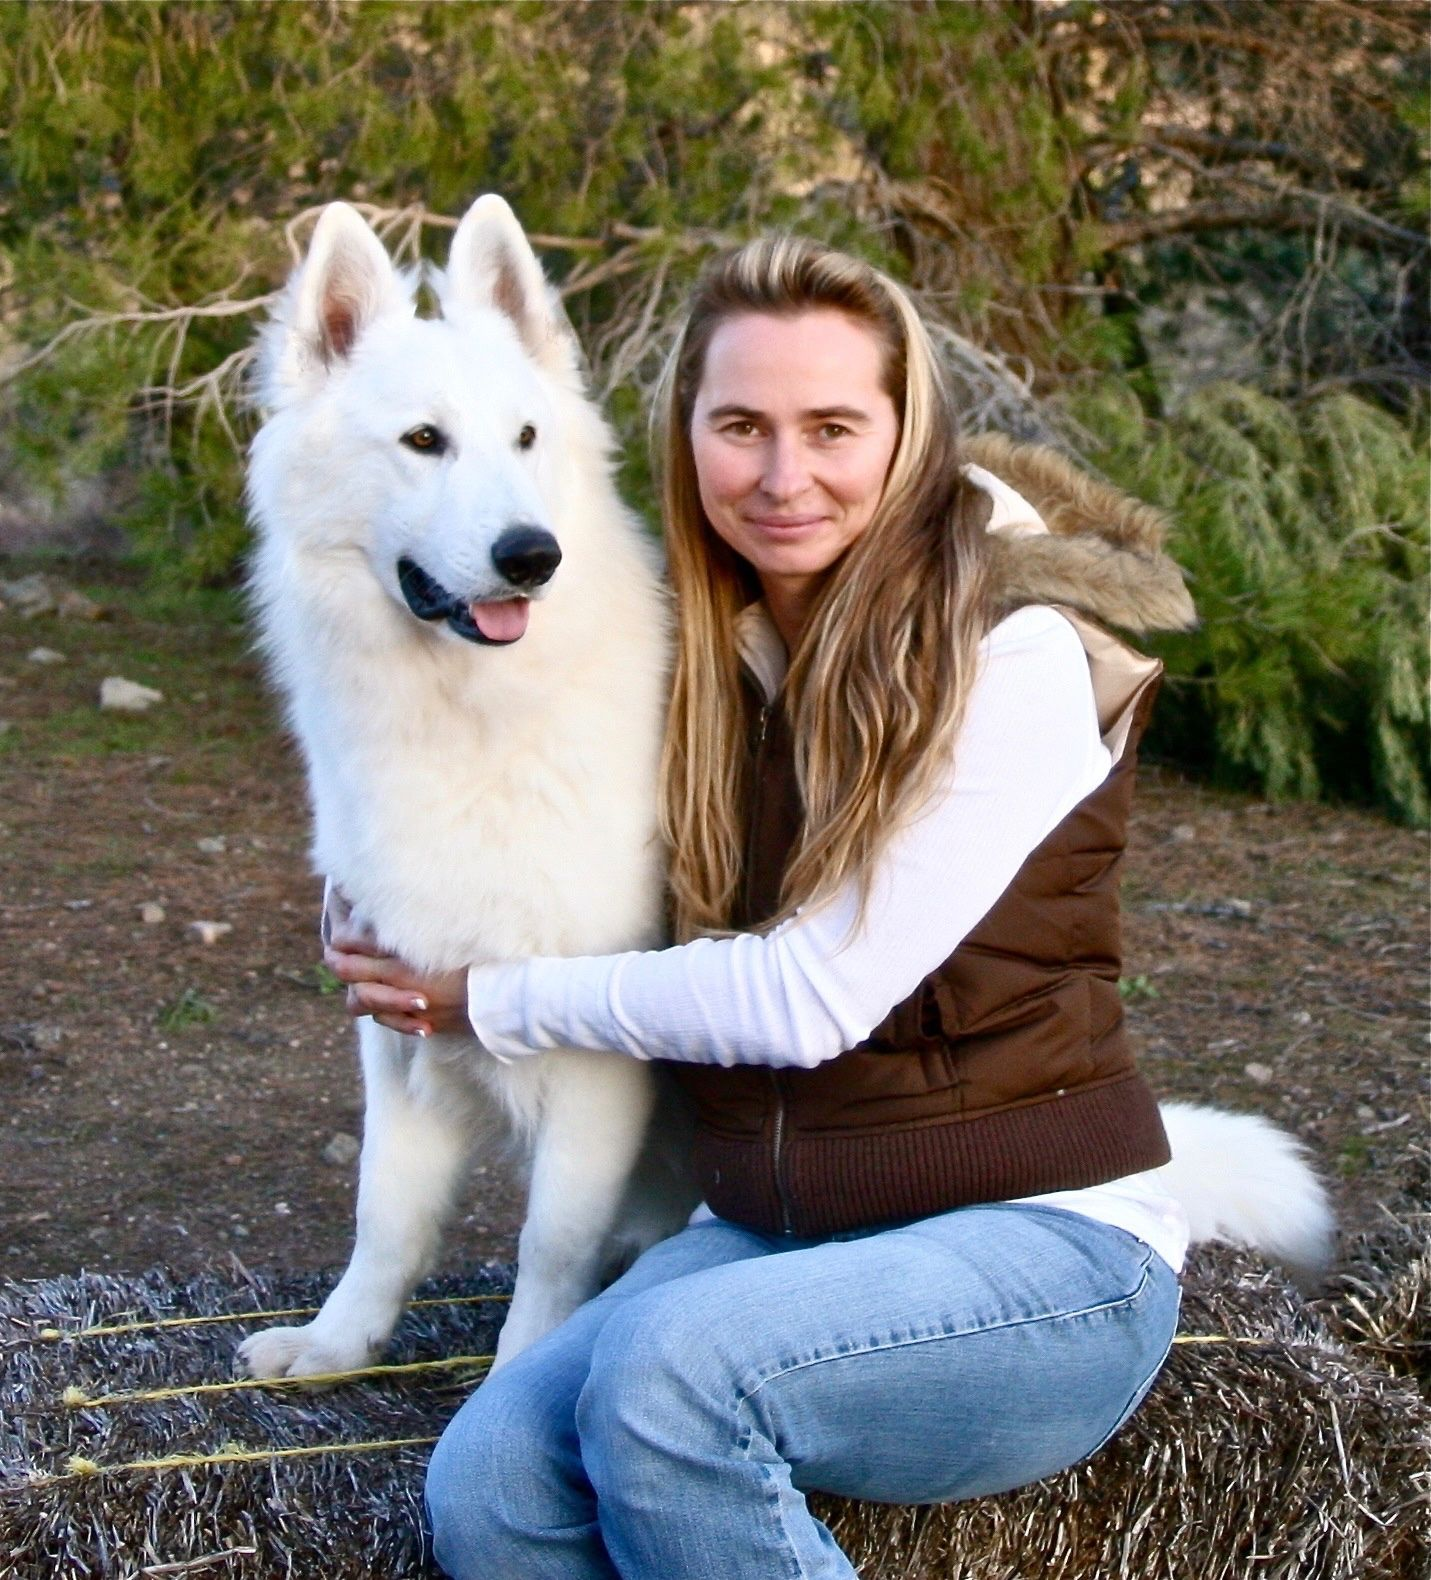 Dances With Wolves Ranch whiteswissshepherd